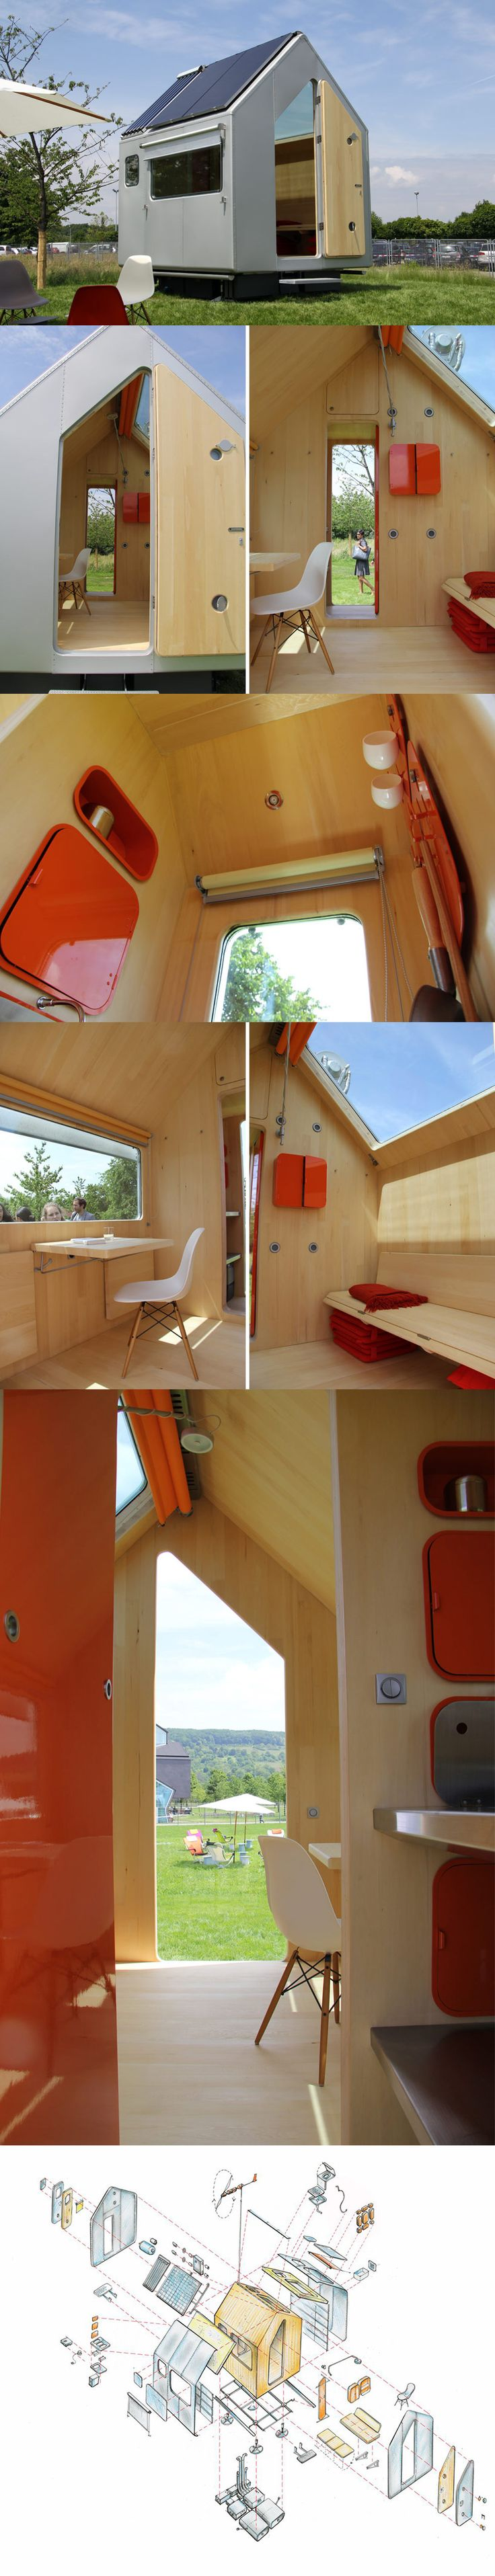 Tiny cabin designed by Renzo Piano